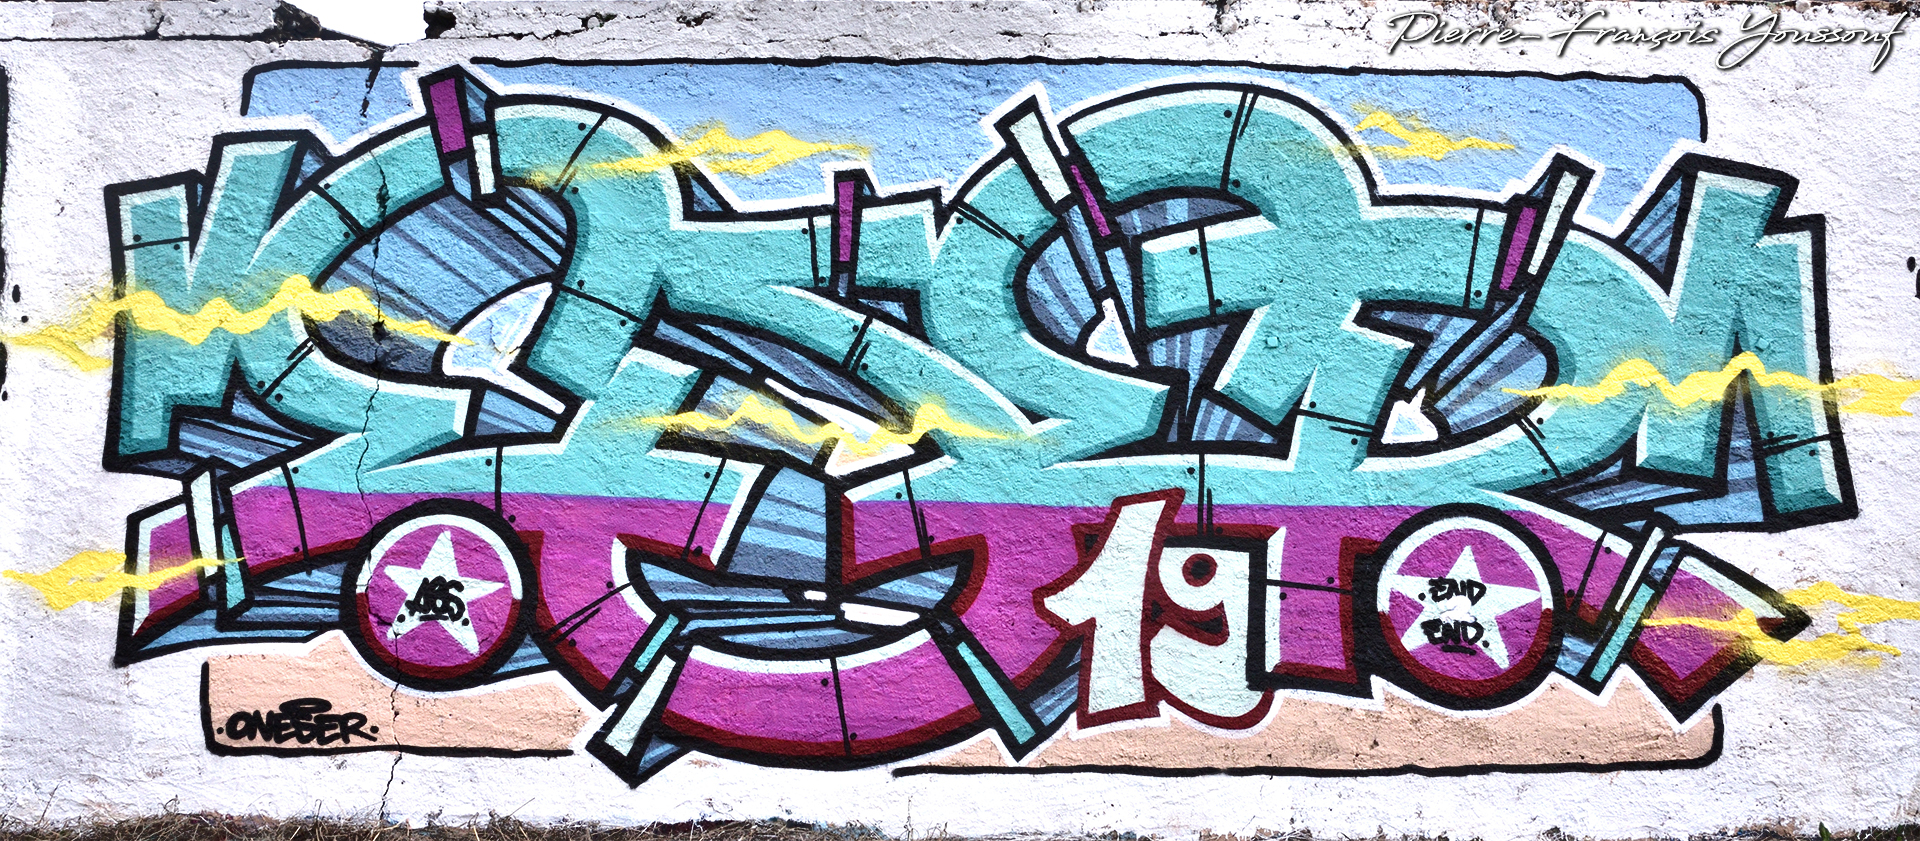 Graff by Eser